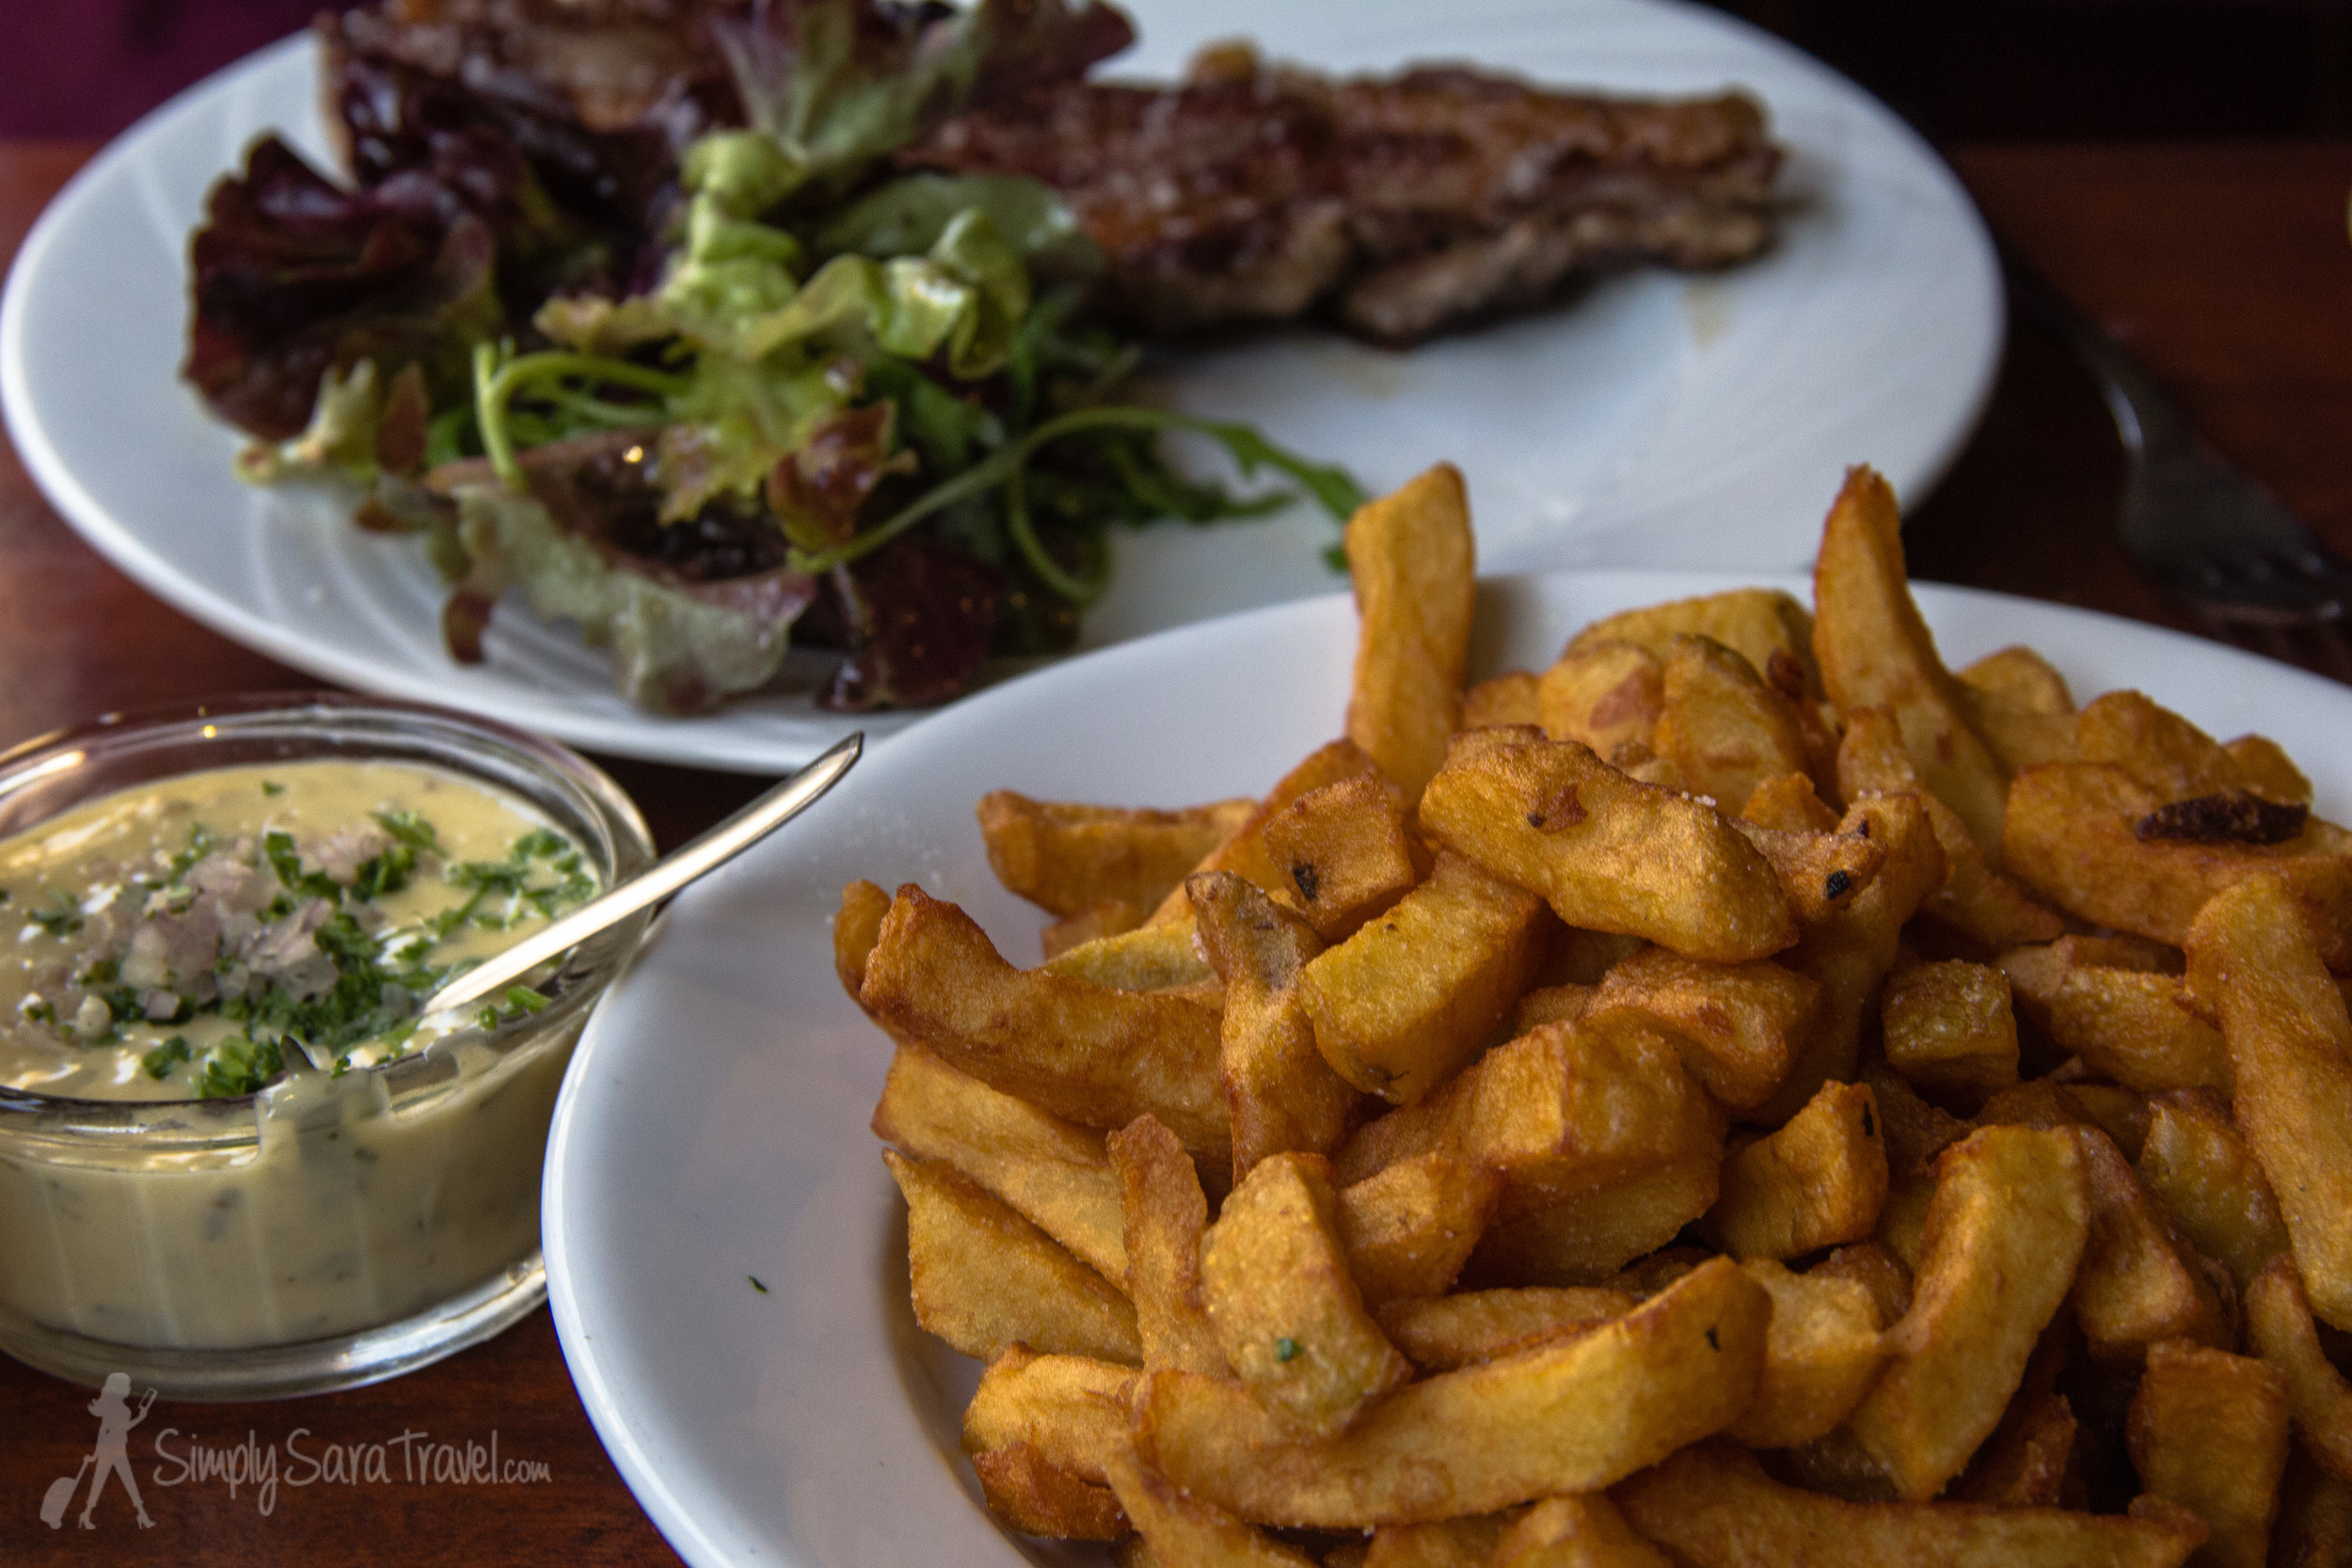 French perfection: Entrecôte (steak) served with frites (fries) andBéarnaise sauce